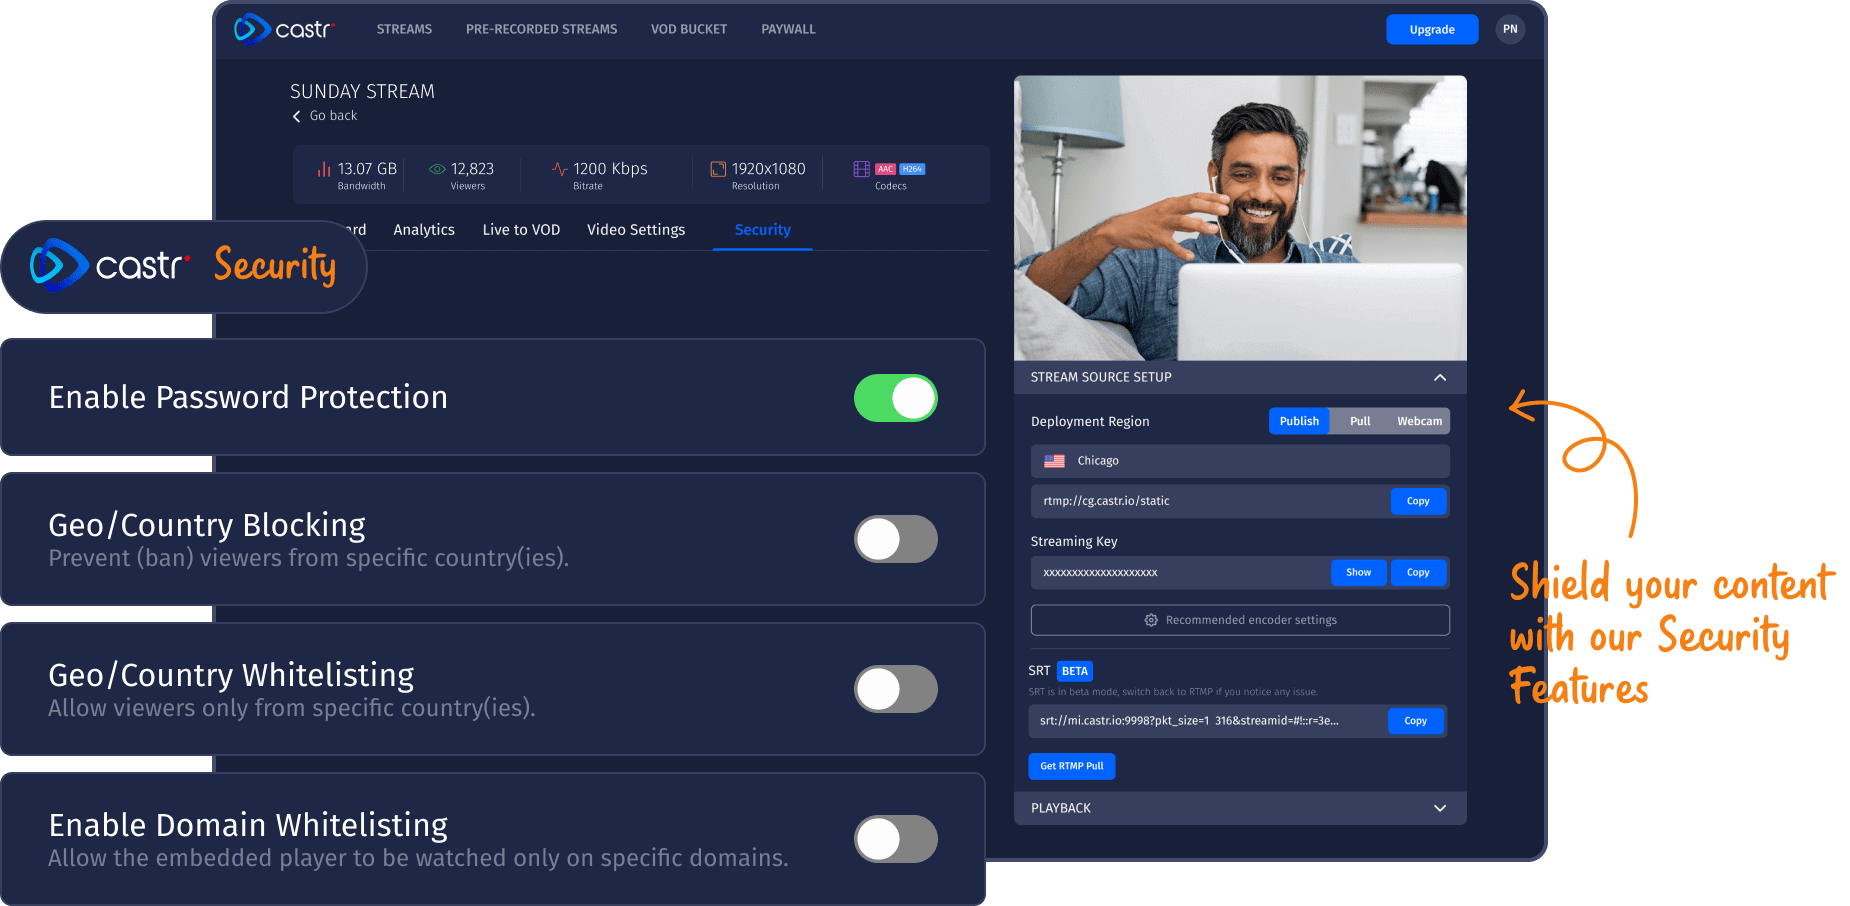 live streaming security features in castr